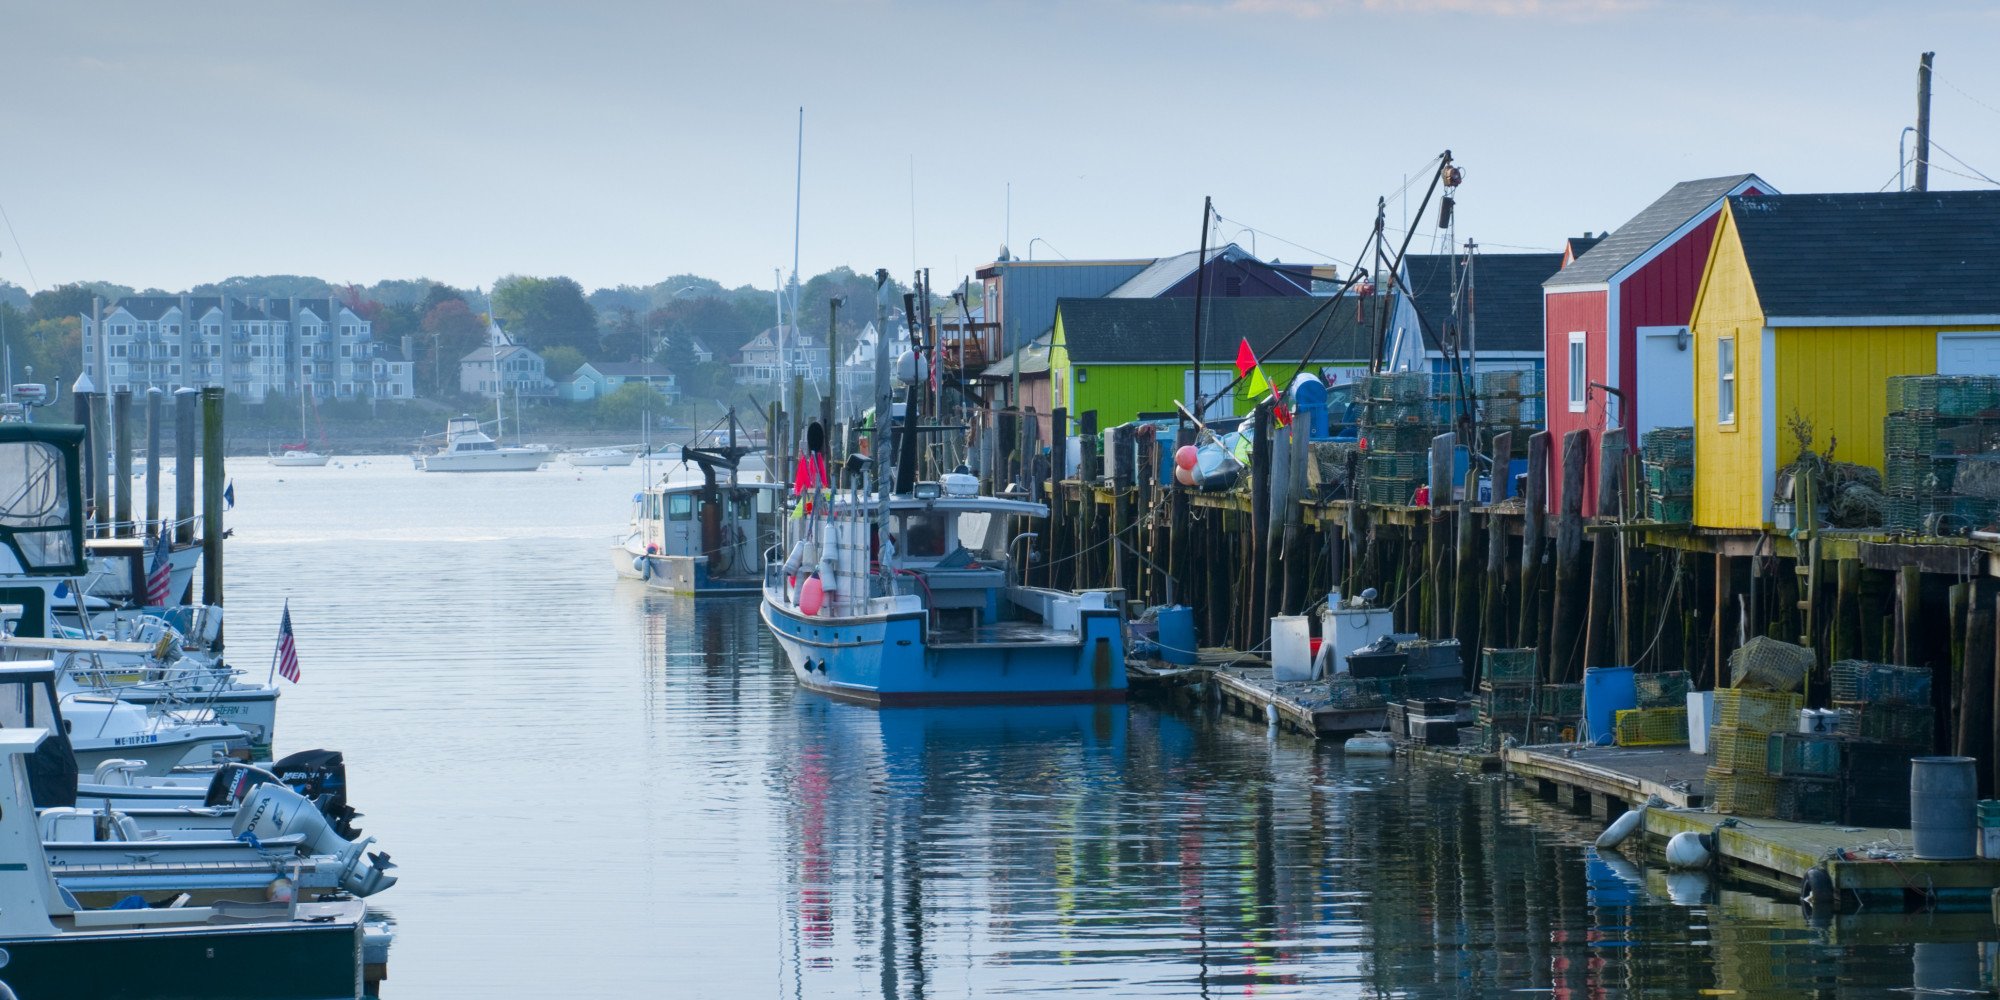 The 16 best towns to live in according to outside for Best small city to live in